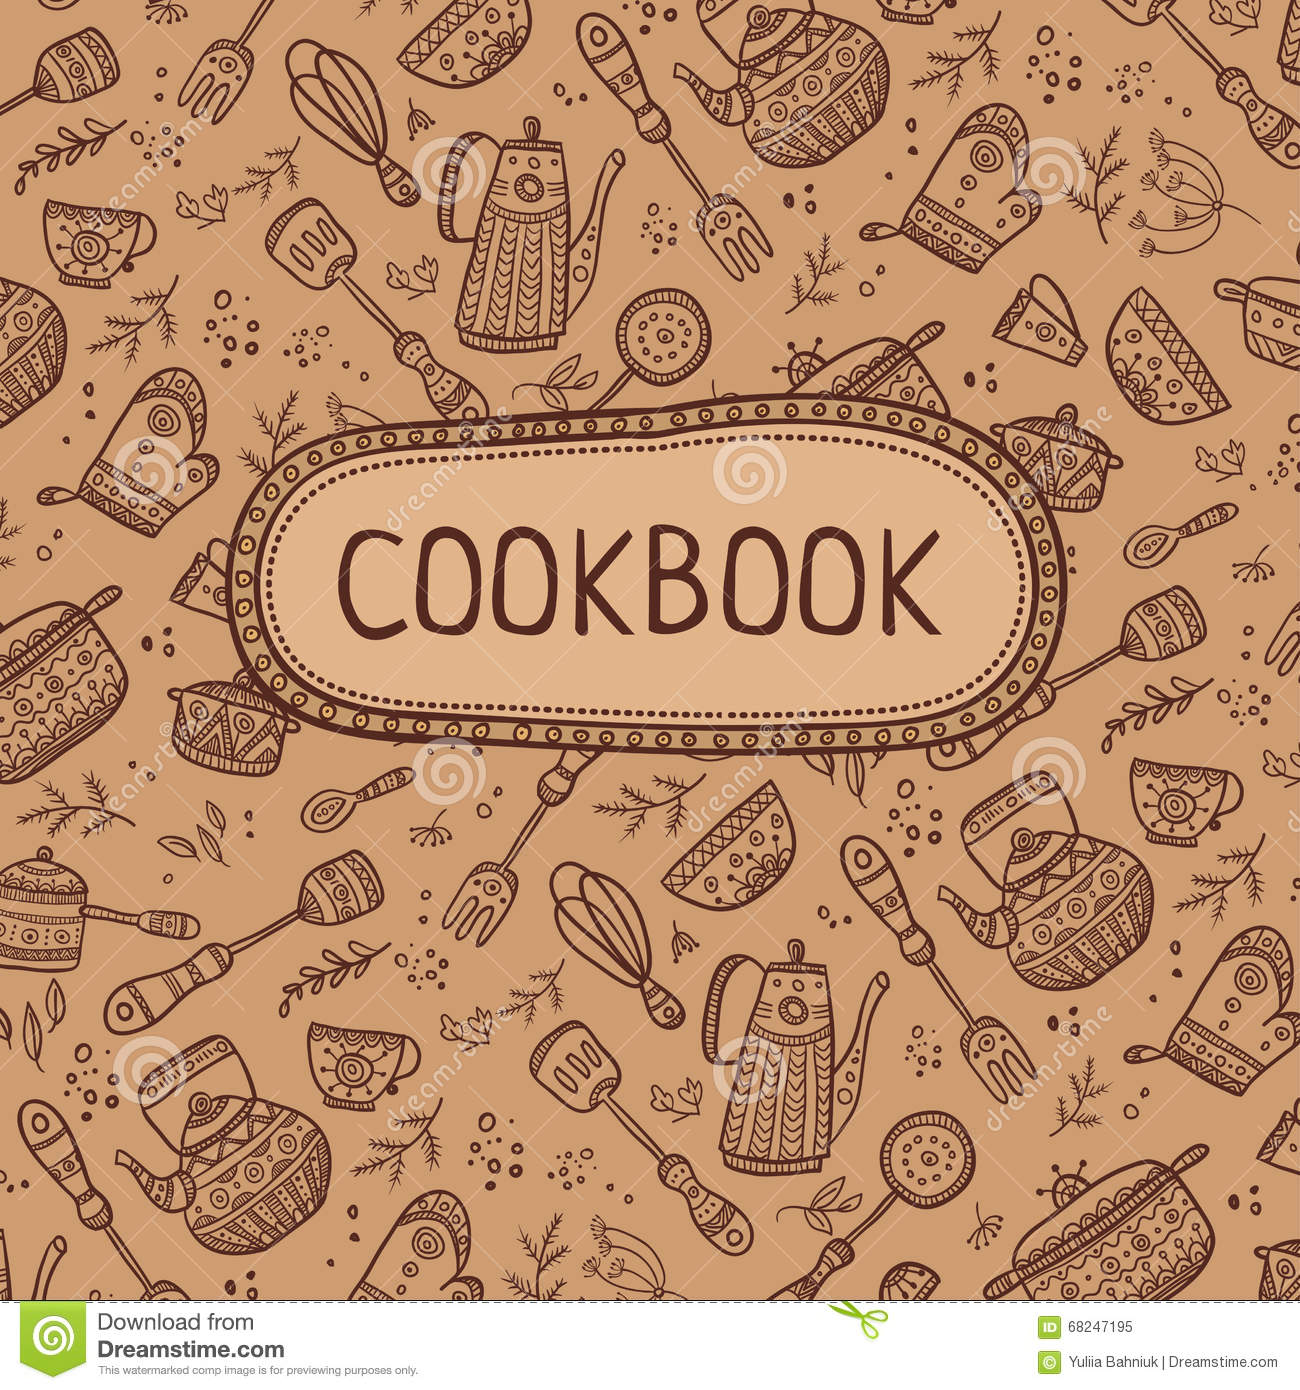 Cookbook Cover Images : Cookbook cover with kitchen items stock vector image